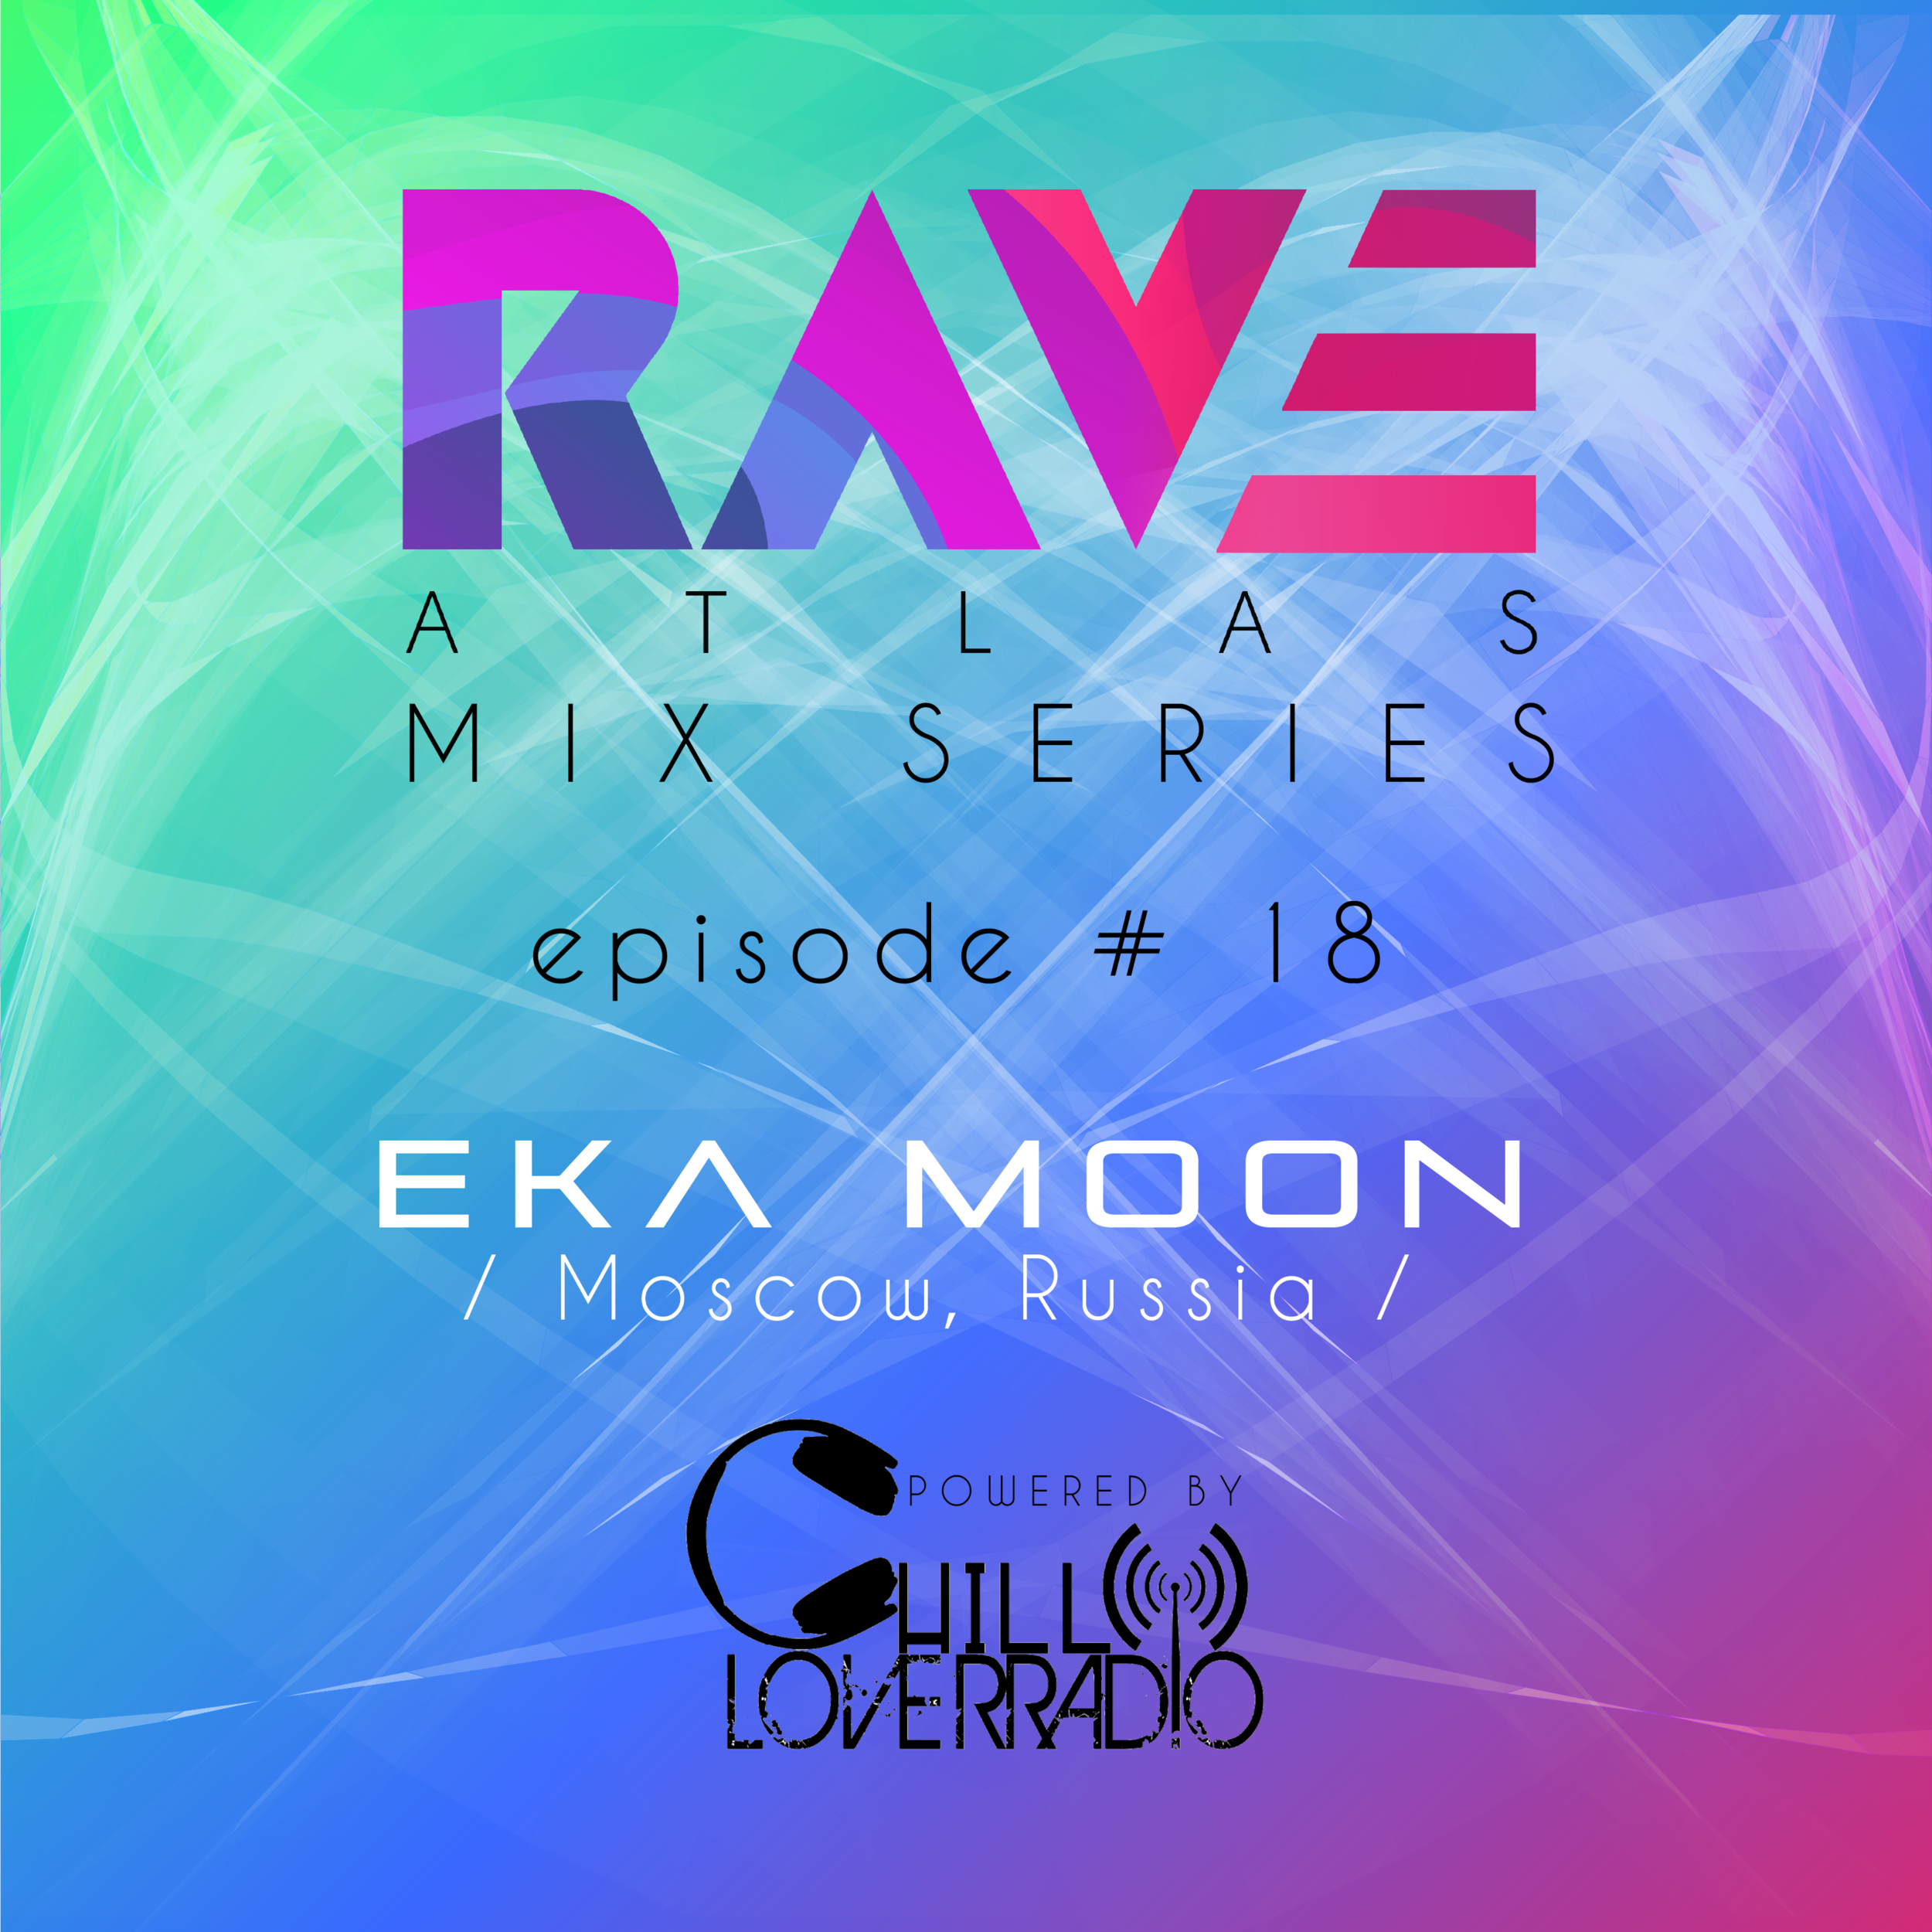 Rave Atlas Mix Series EP 018 - Eka Moon - Moscow, Russia